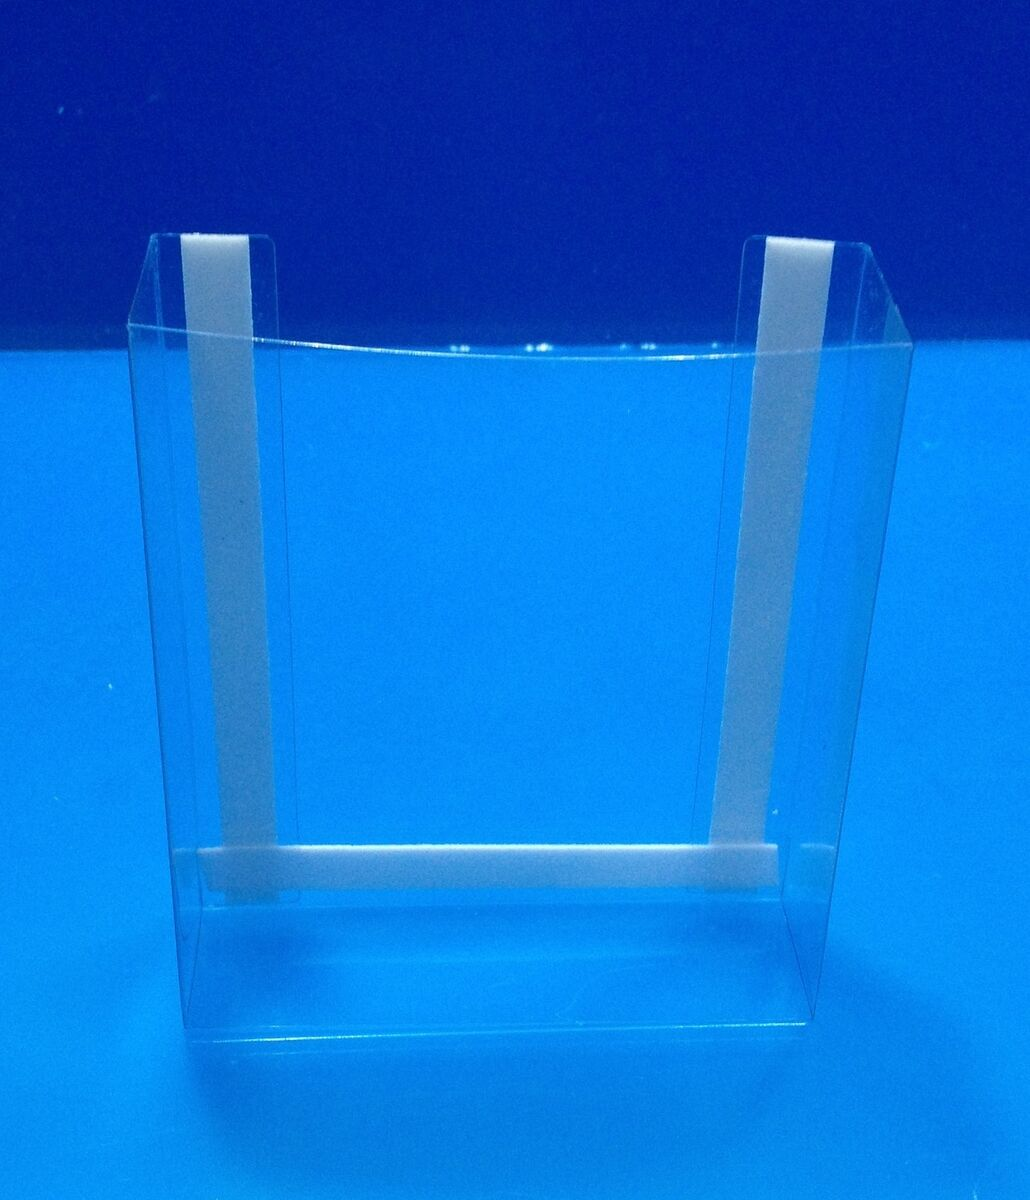 2 Clear Wall Mount Tri Fold Brochure Holder These Will Mount to Any Flat Surface